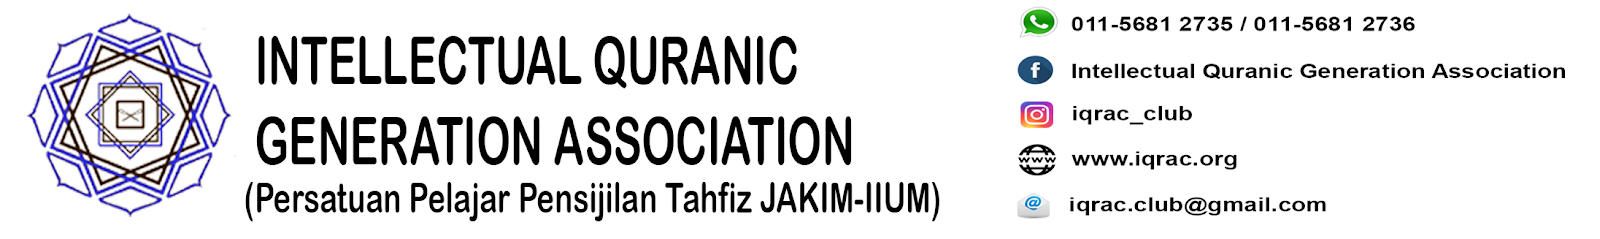 IQRAC - Intellectual Quranic Generation Association